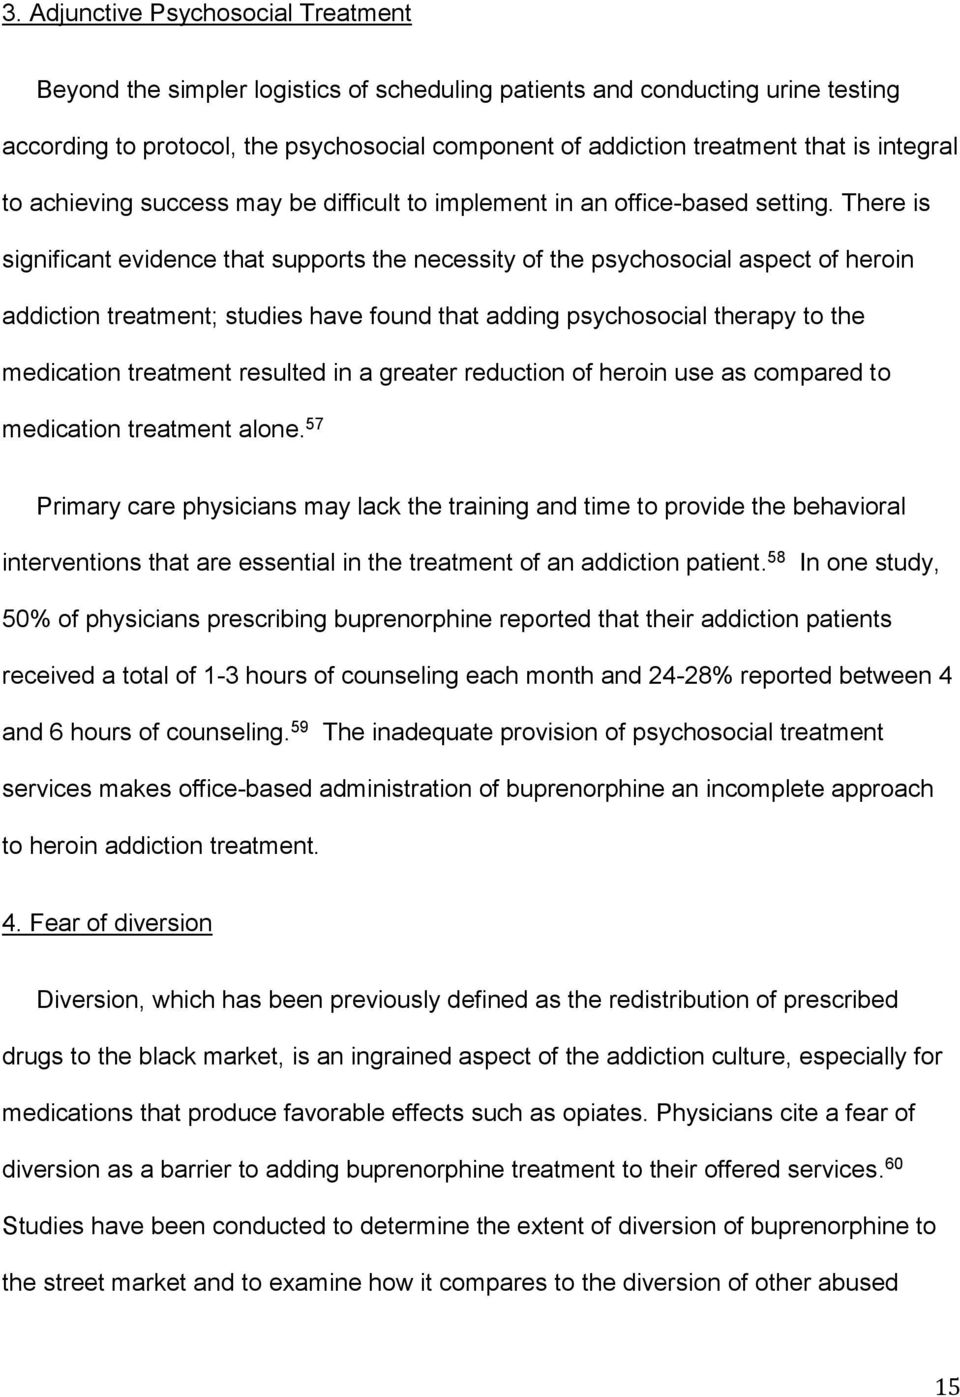 There is significant evidence that supports the necessity of the psychosocial aspect of heroin addiction treatment; studies have found that adding psychosocial therapy to the medication treatment